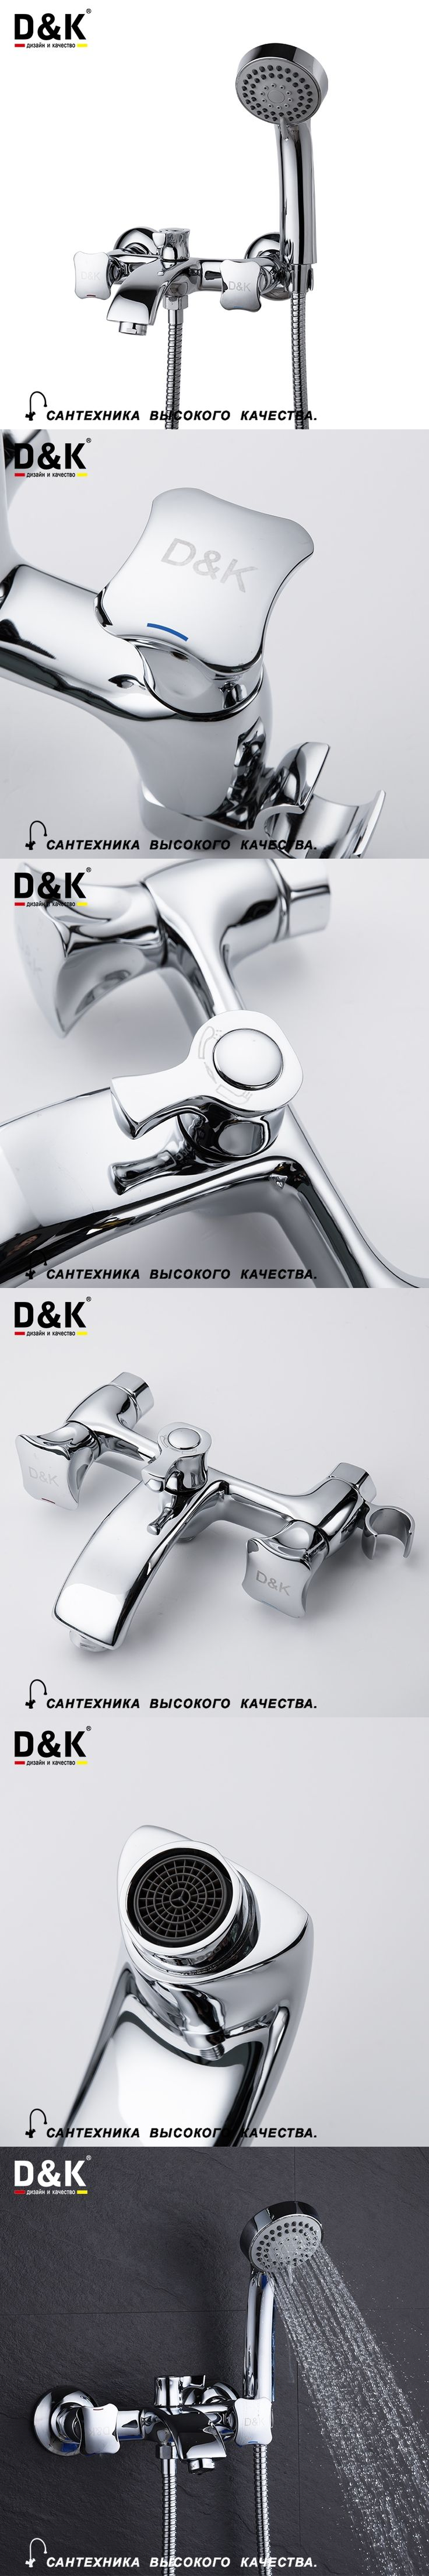 D&K Bathtub Faucets Chrome Brass Dual Handles Hot and cold water tap DA1383201